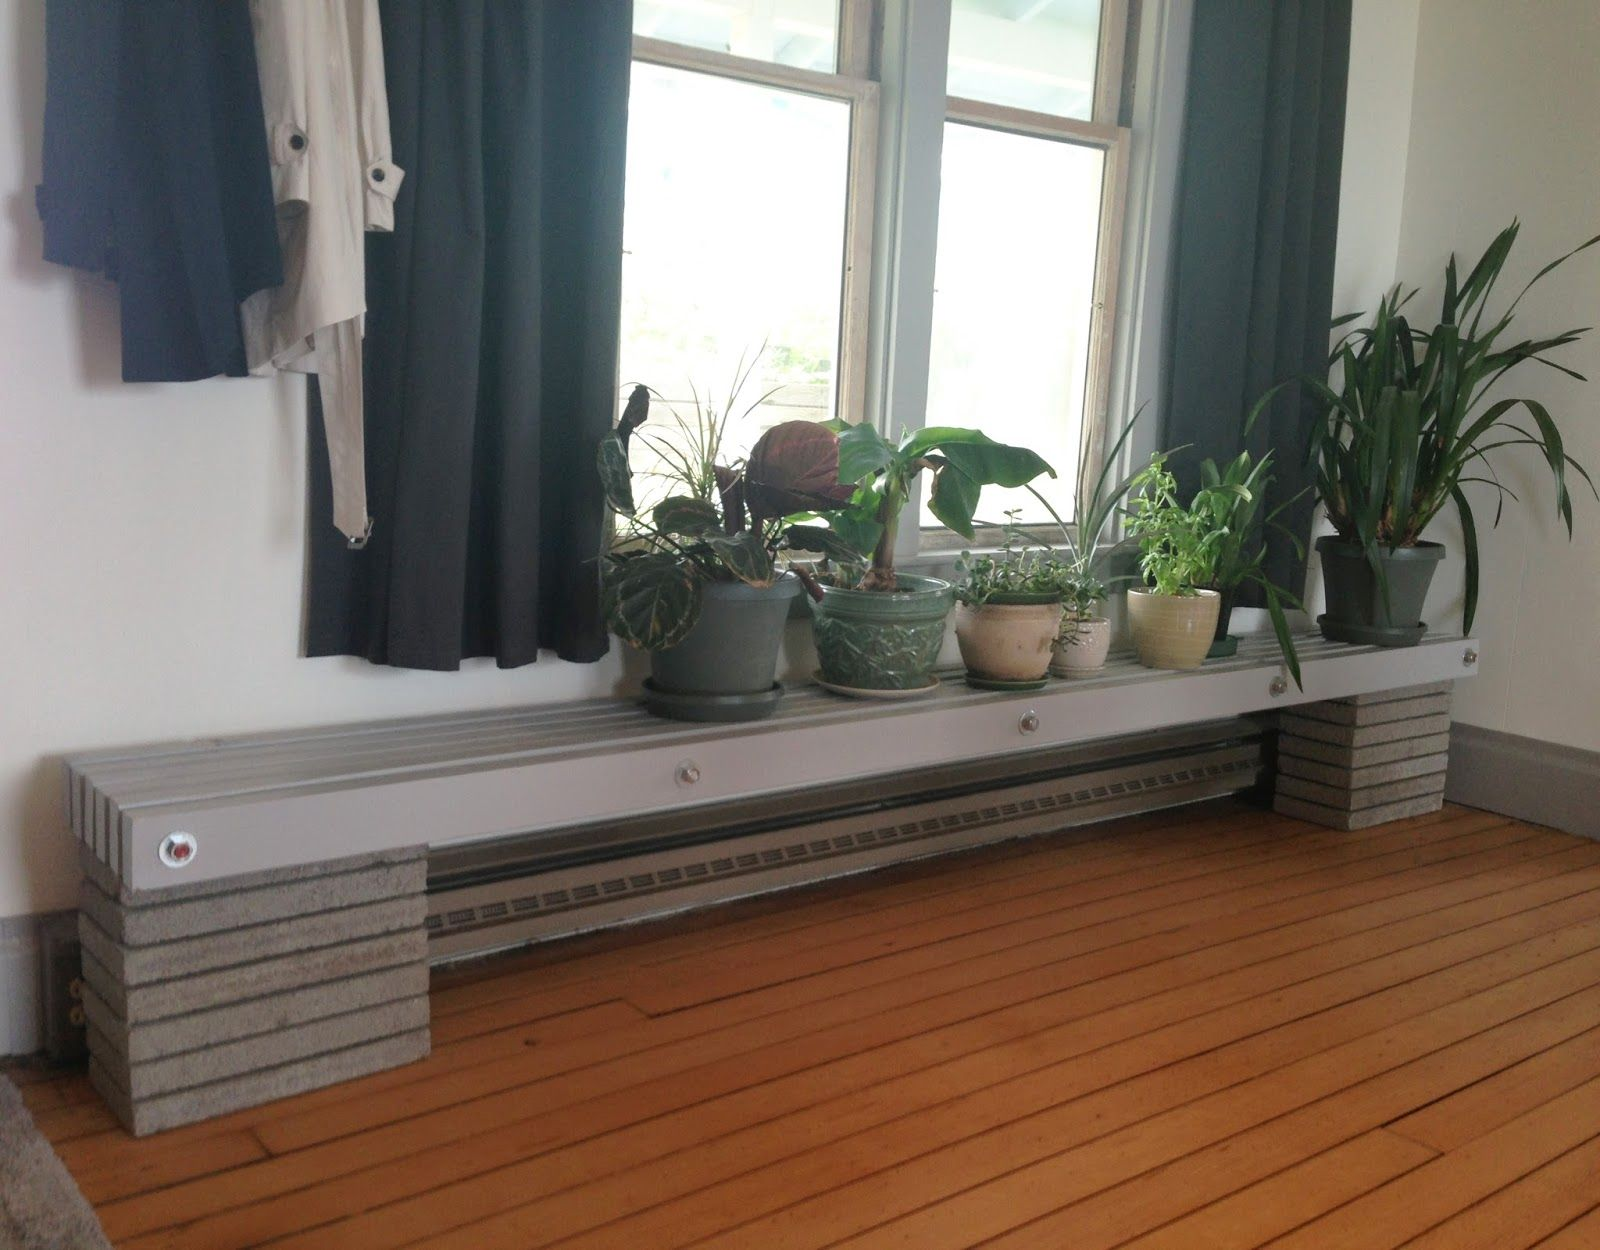 Bench Over Baseboard Heater Miguel Barcelo